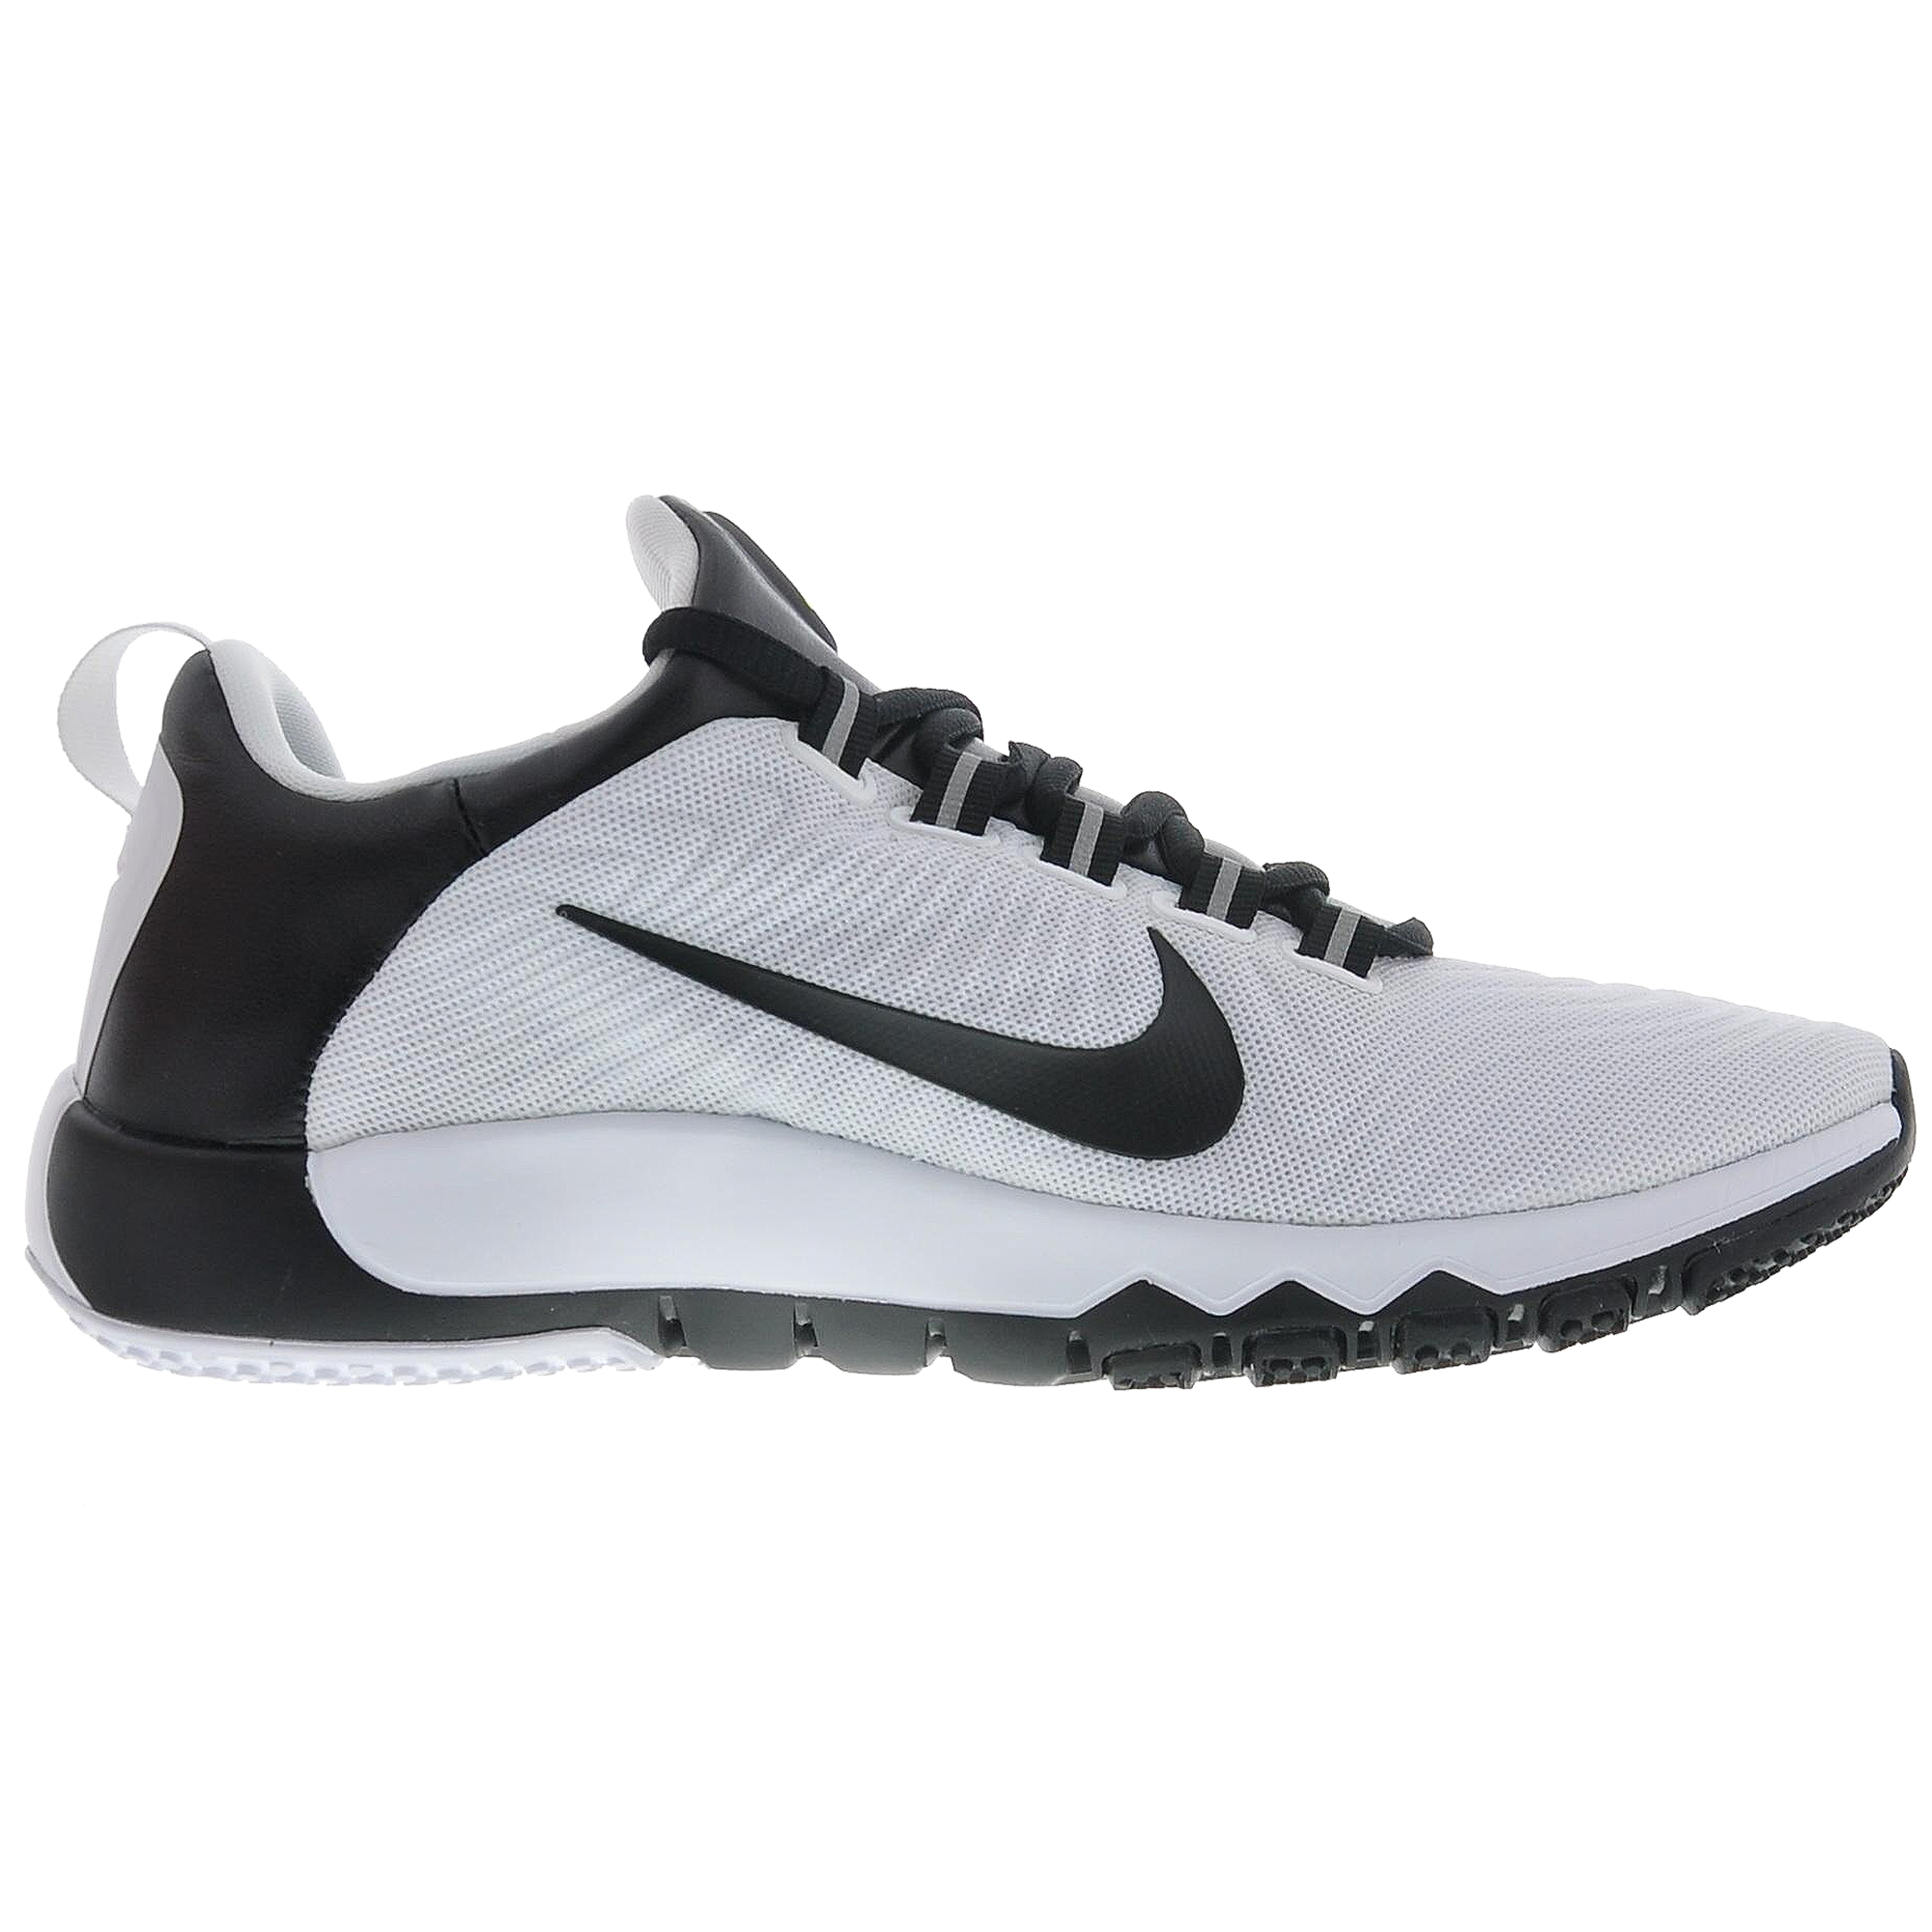 nike free trainer 5 0 v5 erkek spor ayakkab 644671 107. Black Bedroom Furniture Sets. Home Design Ideas